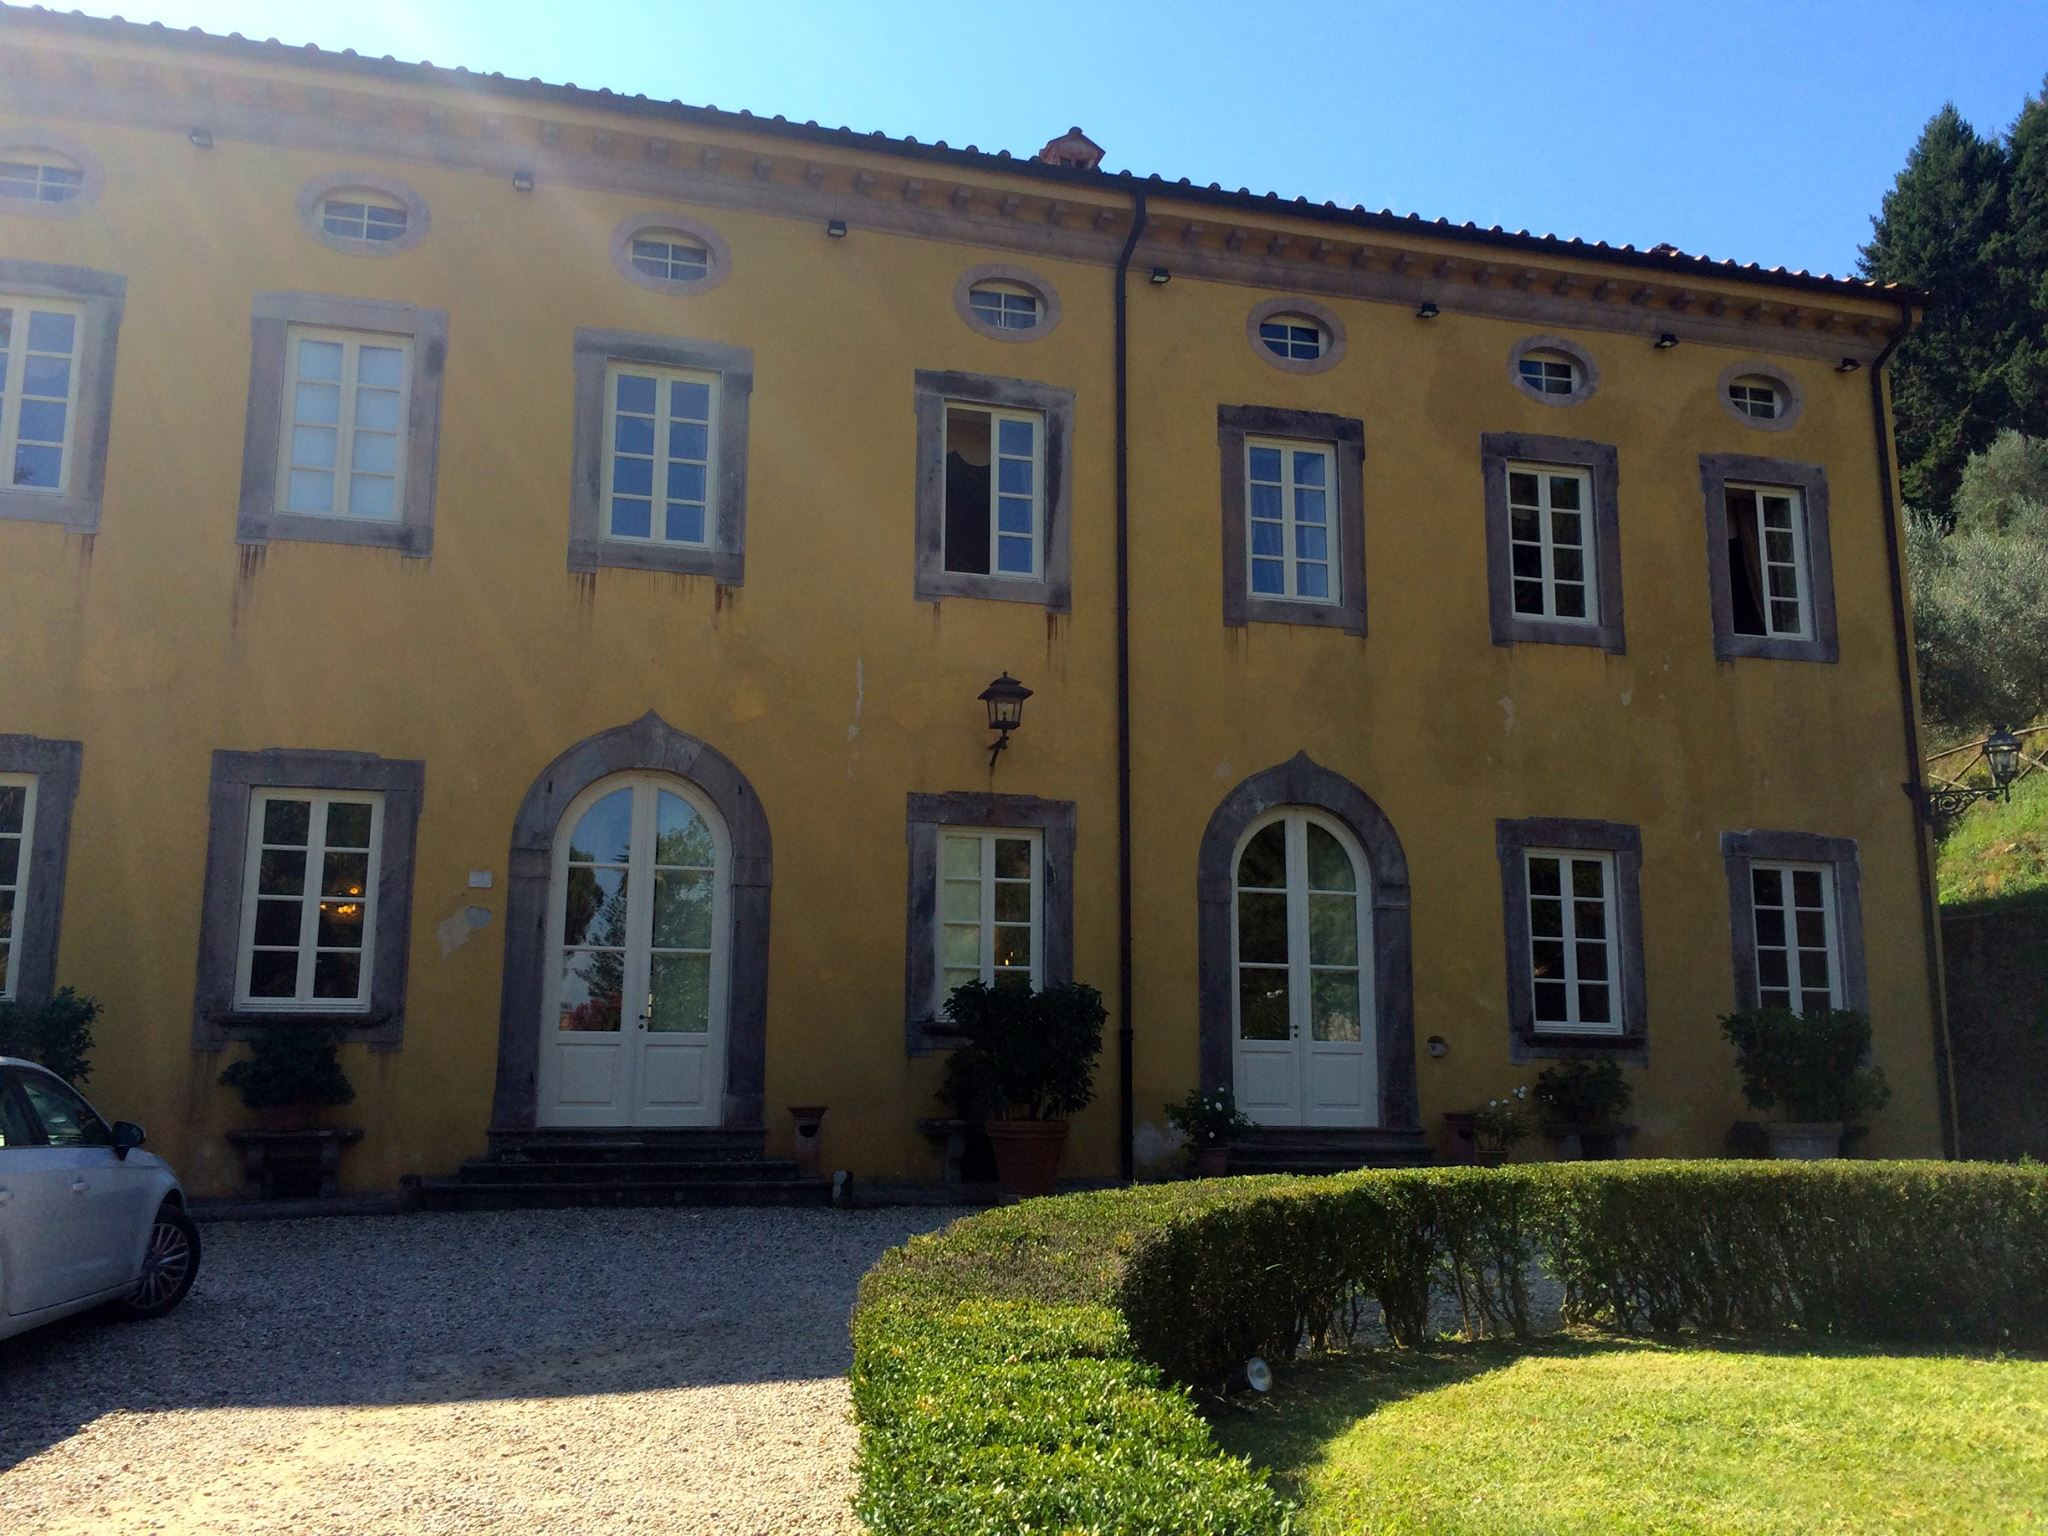 Villa Controni Italy, - A Trip to Tuscany, Itlay - The Pike's Place